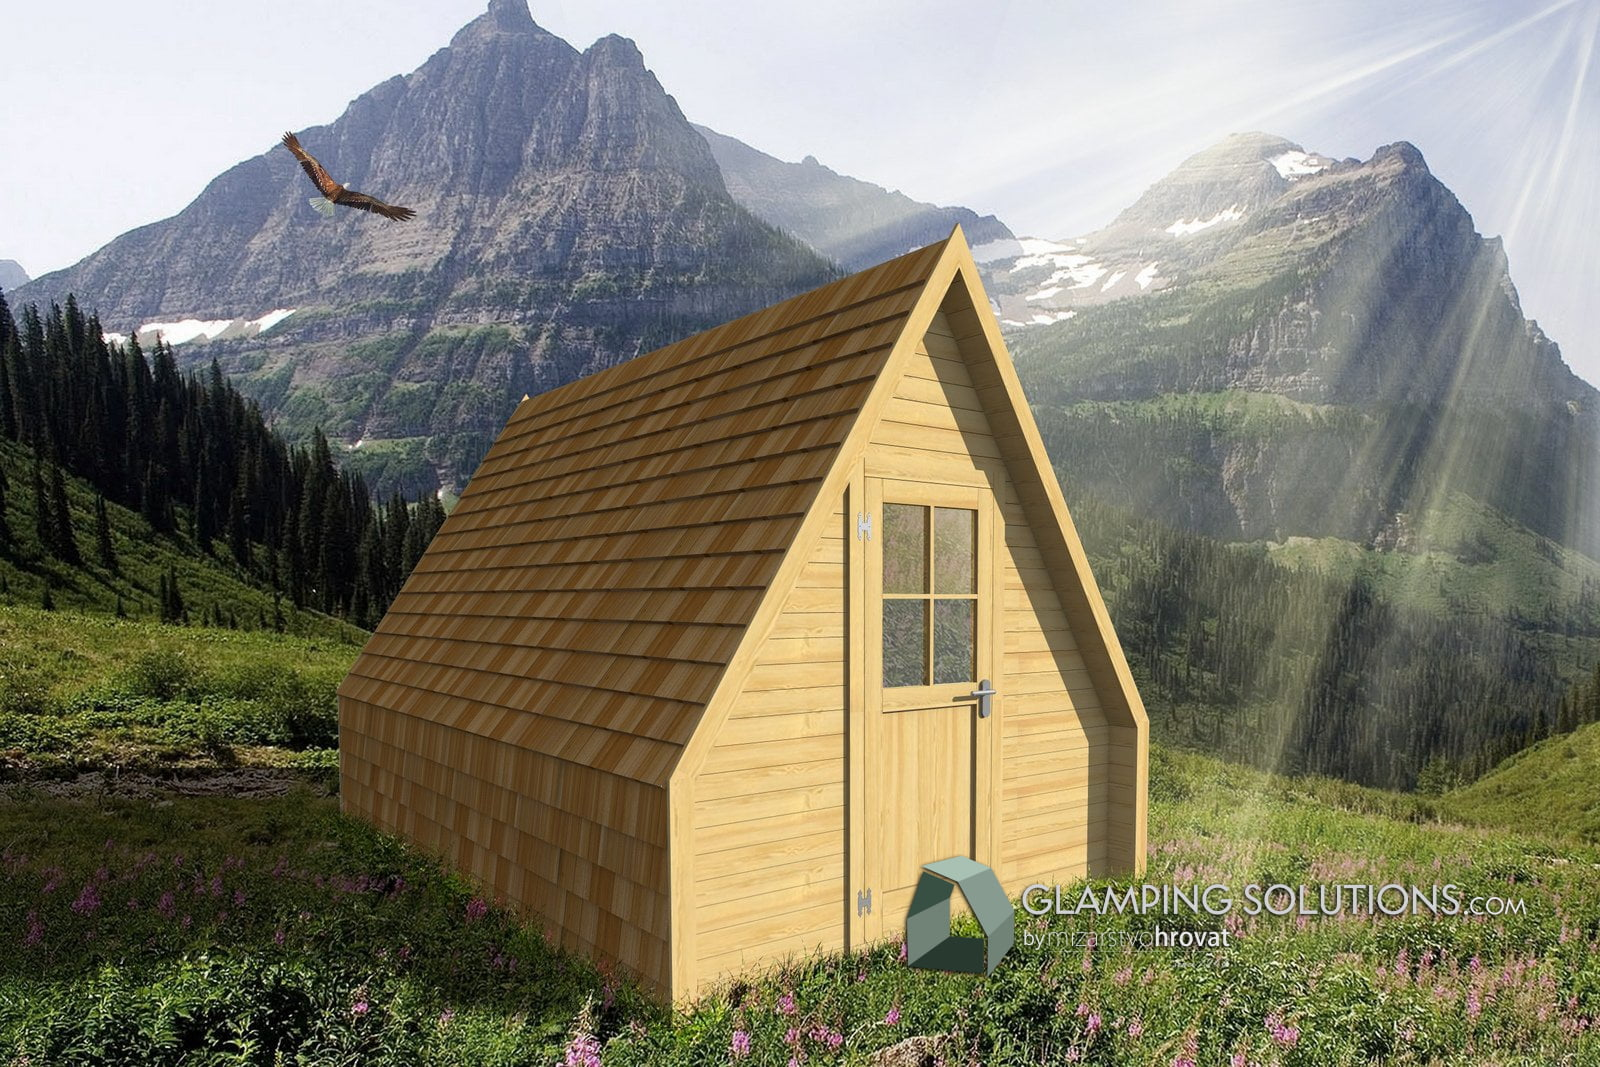 Glamping Alpine Hut